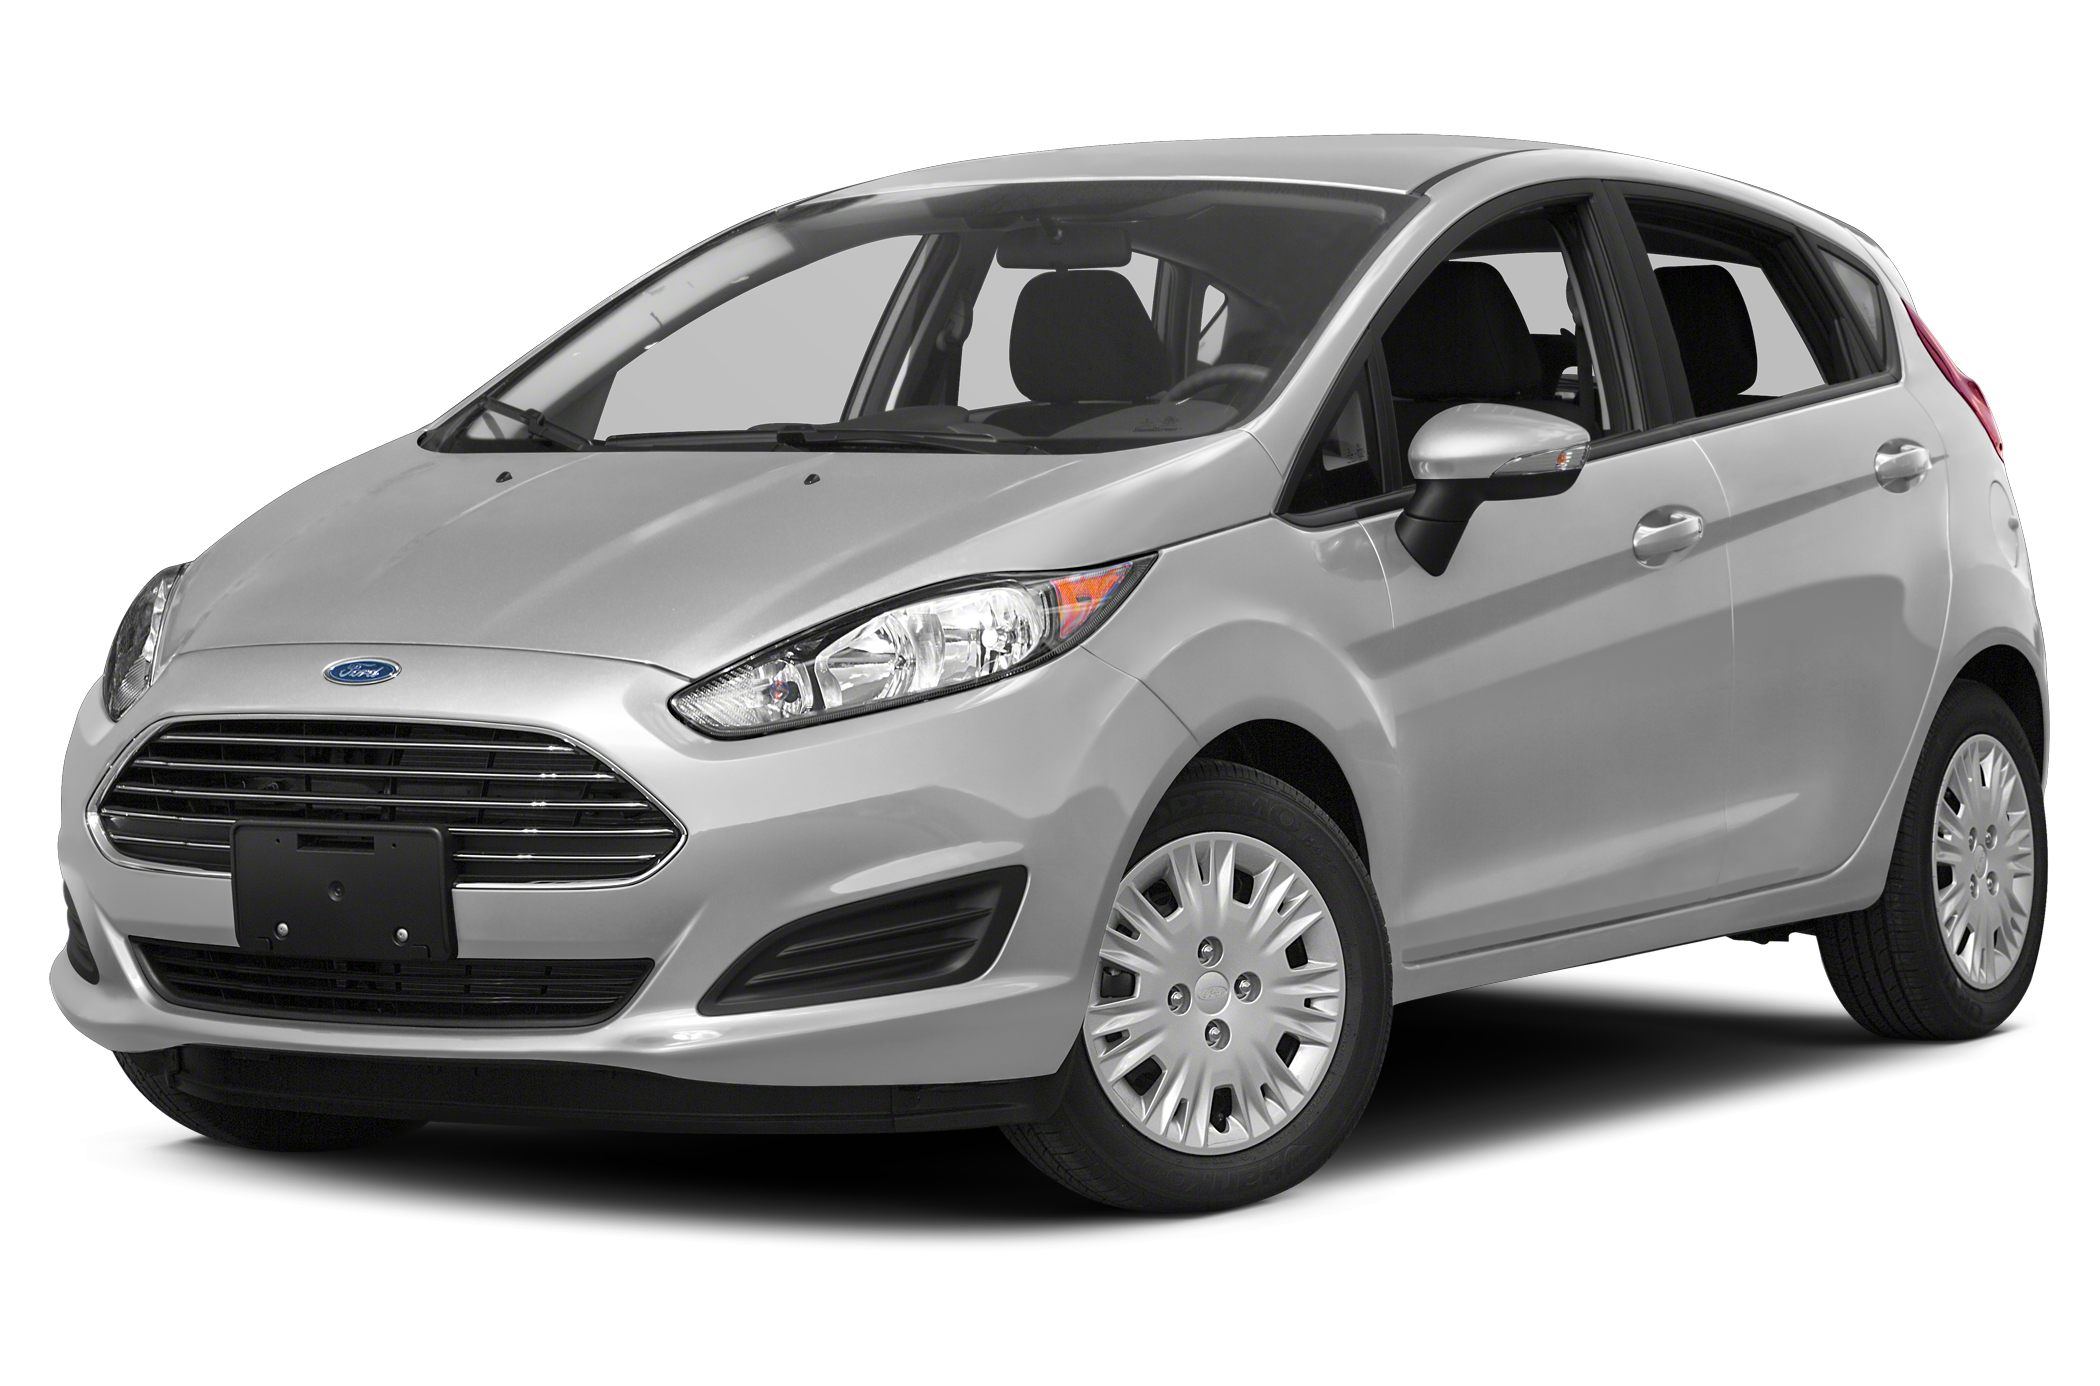 2016 Ford Fiesta SE 2 YEARS MAINTENANCE INCLUDED WITH EVERY VEHICLE PURCHASED Why spend more money